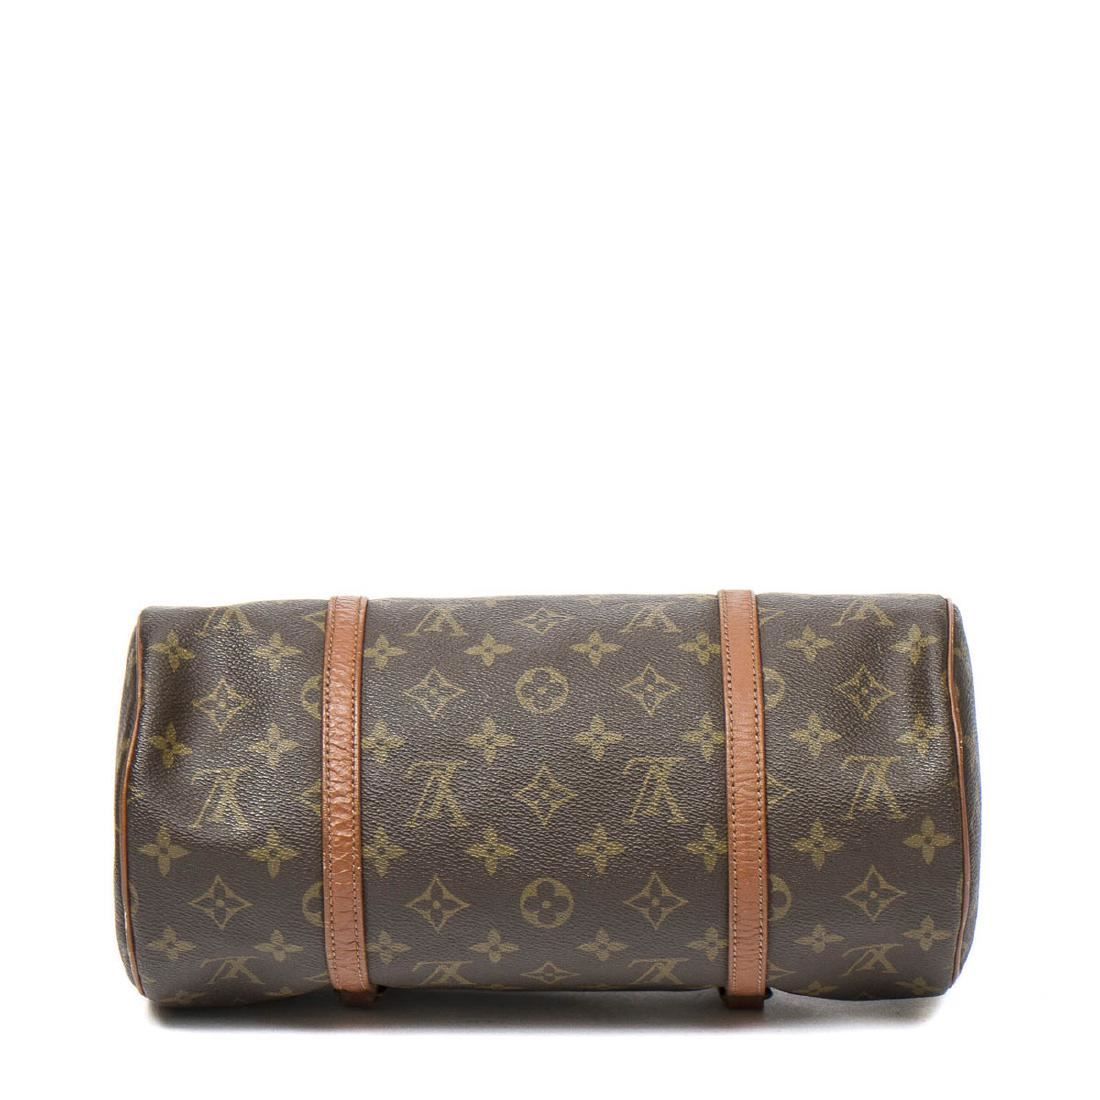 943d1c350387 ... Image 6   Louis Vuitton Papillon 30 in Brown Monogram Canvas ...